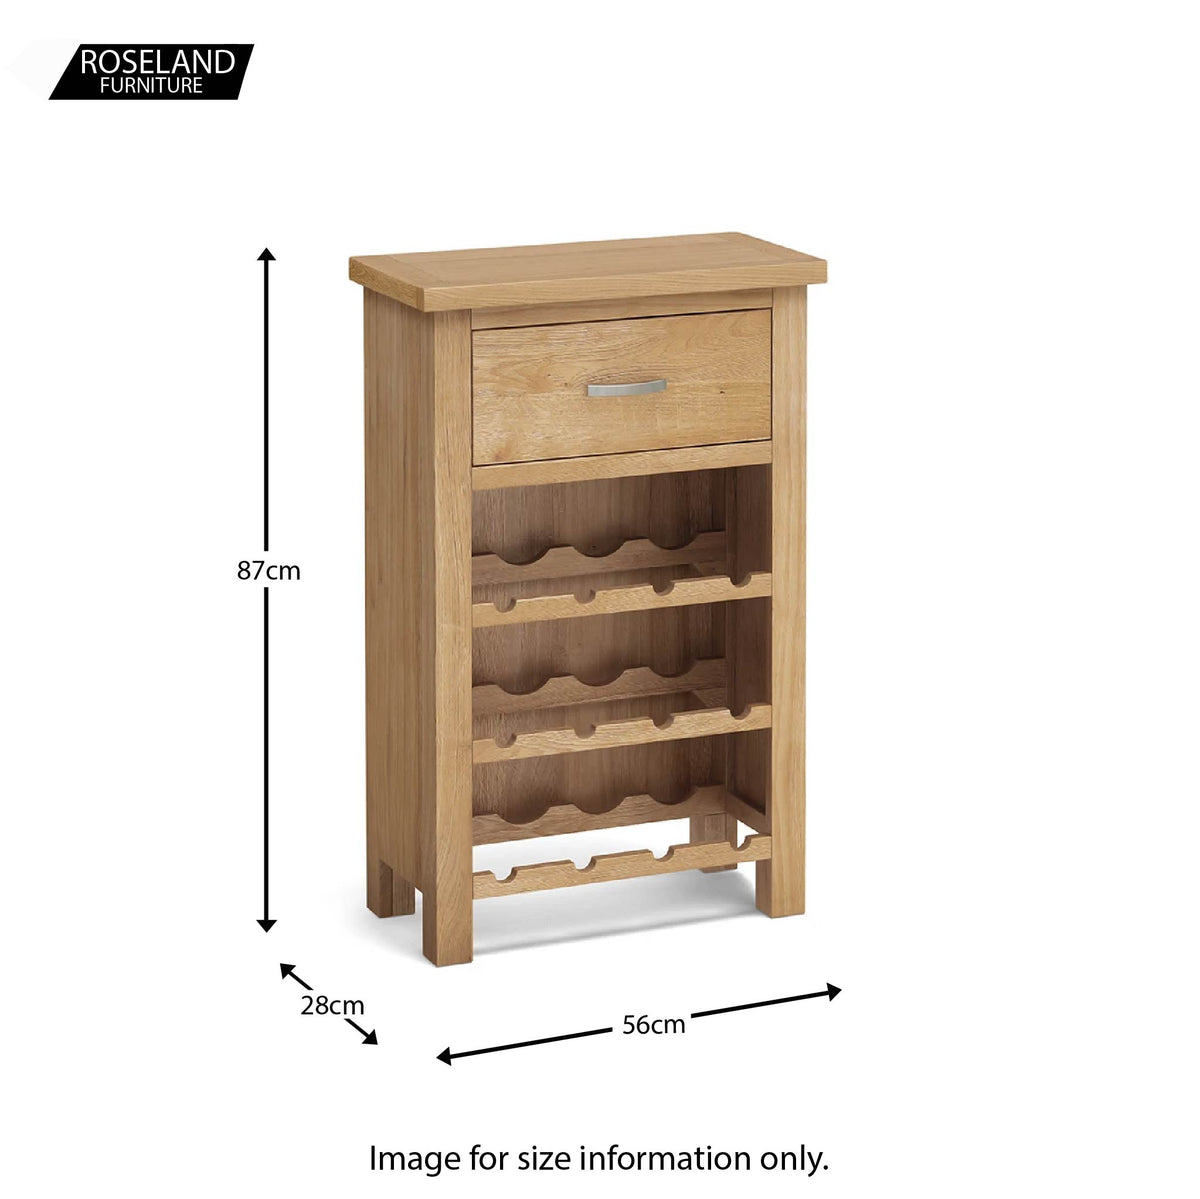 London Oak Wine Cabinet - Size guide